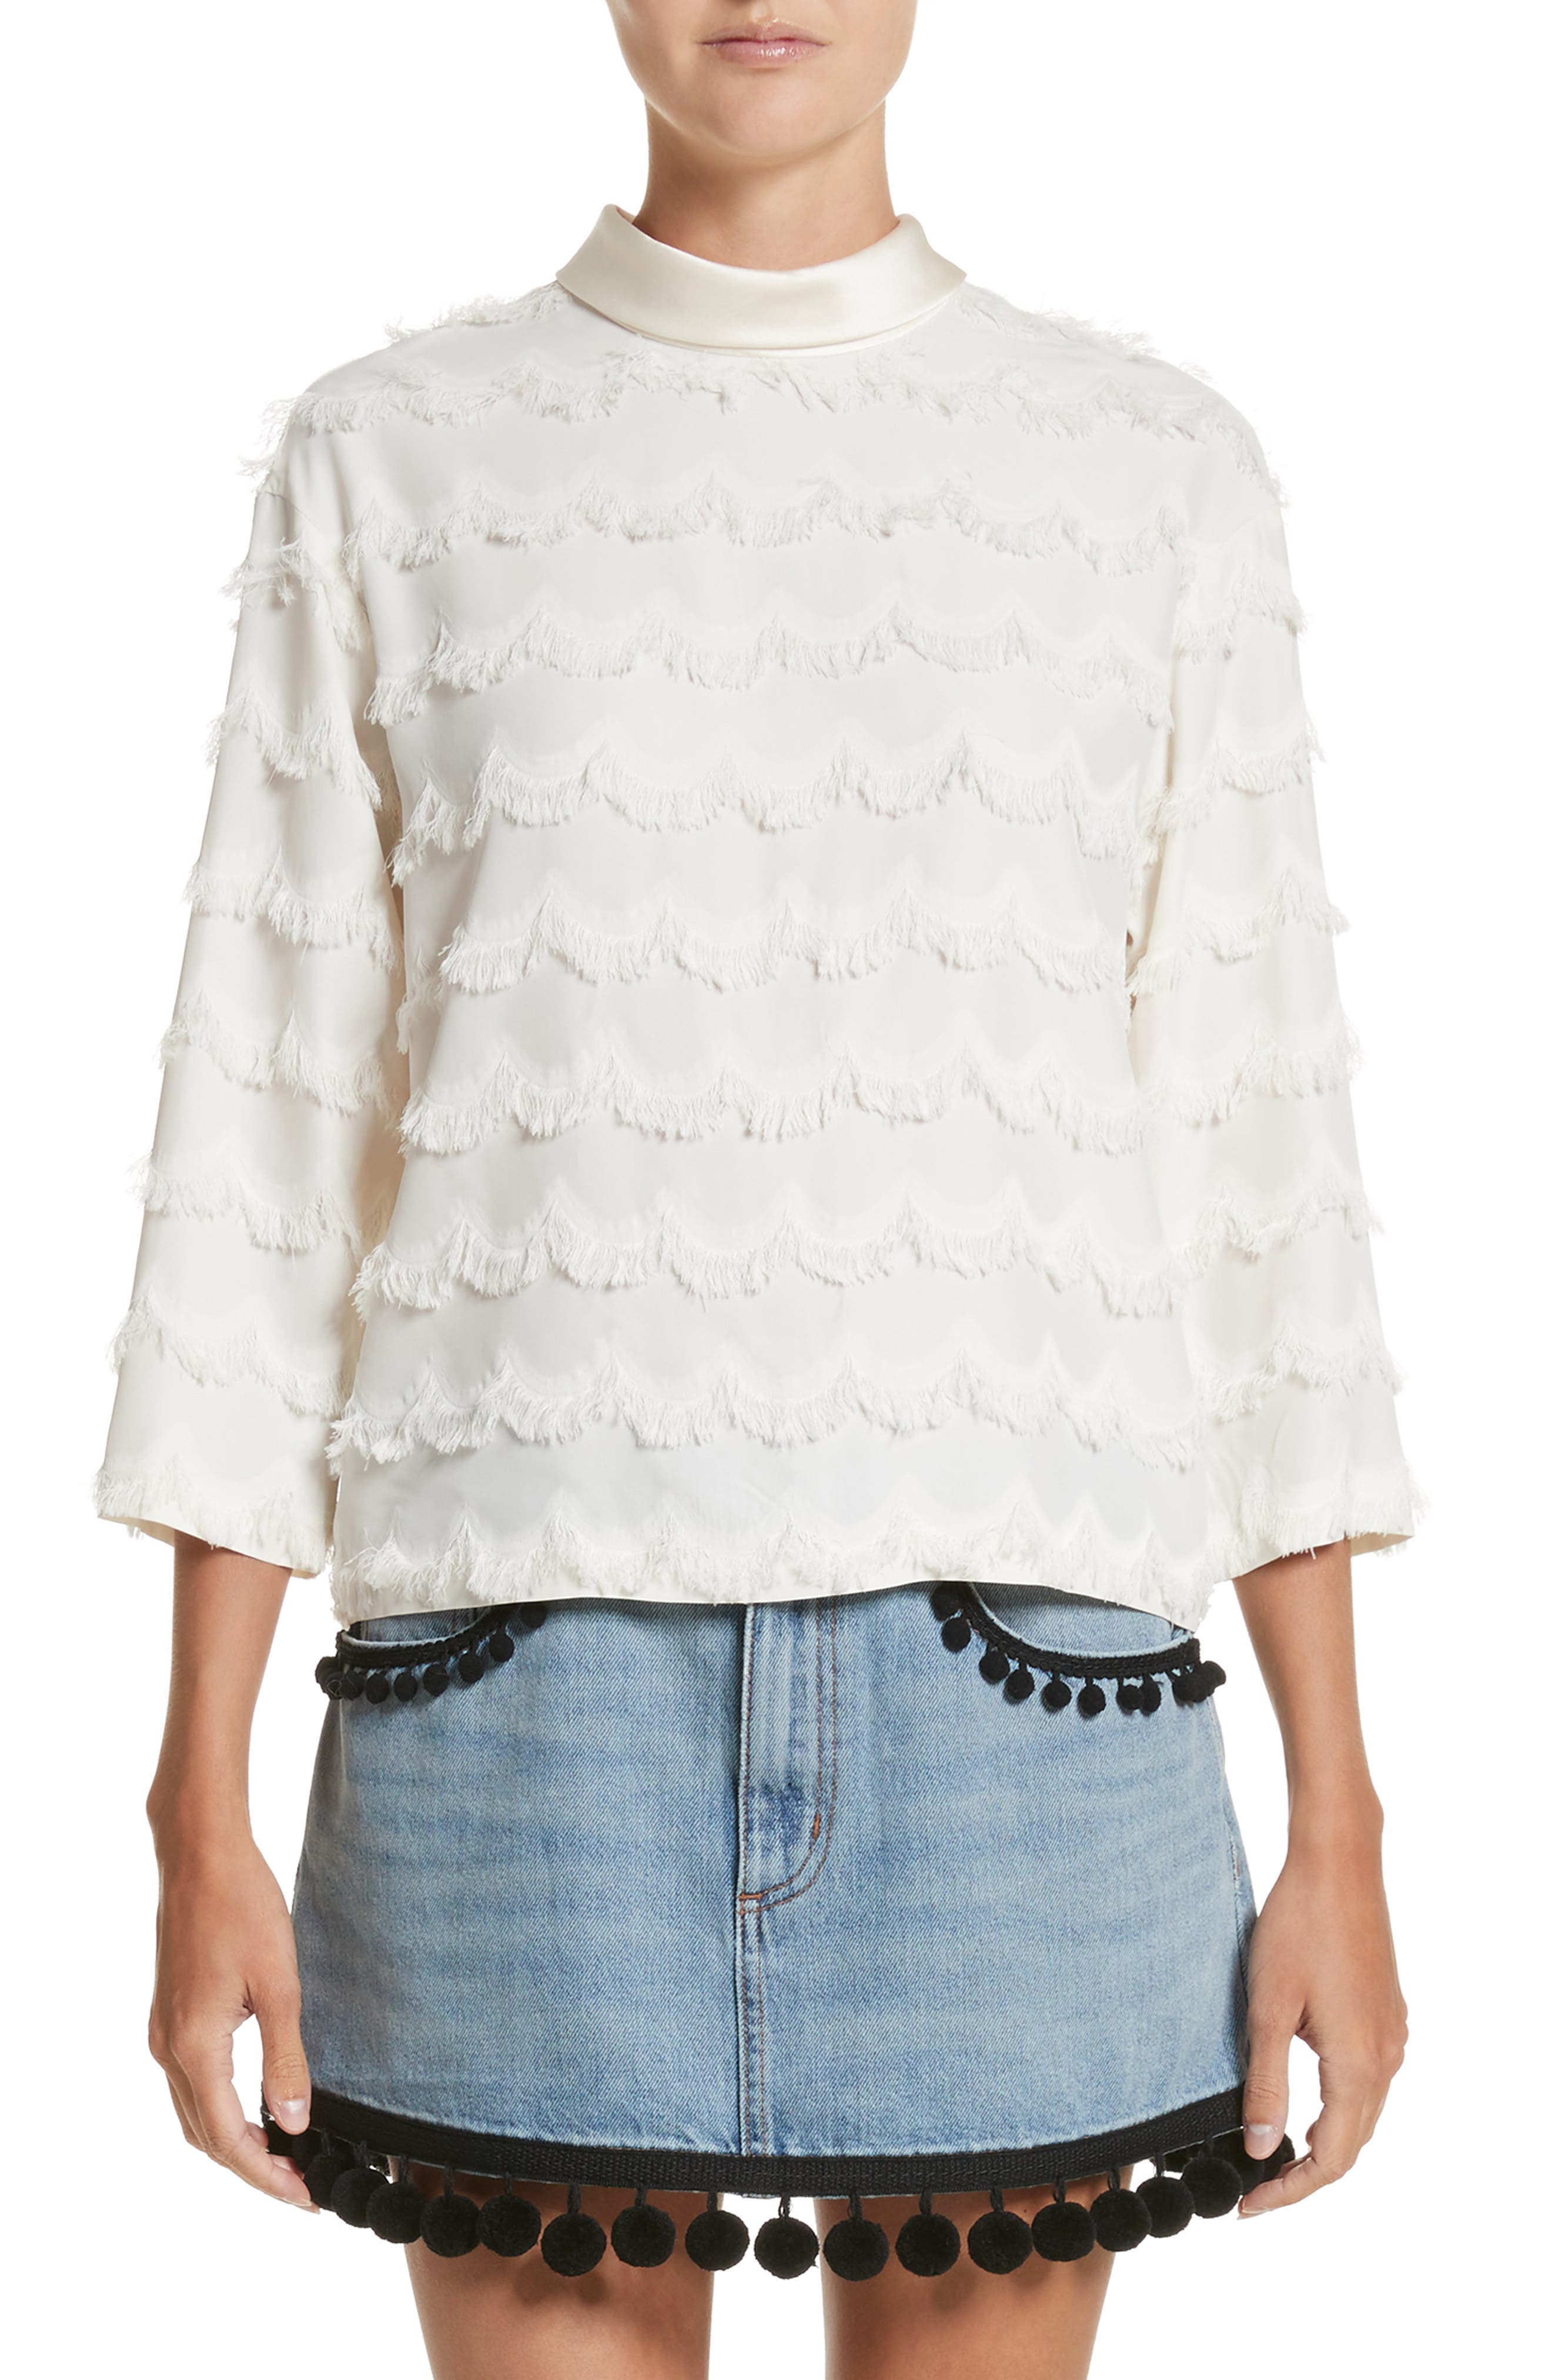 Alternate Image 1 Selected - MARC JACOBS Scalloped Fringe Top